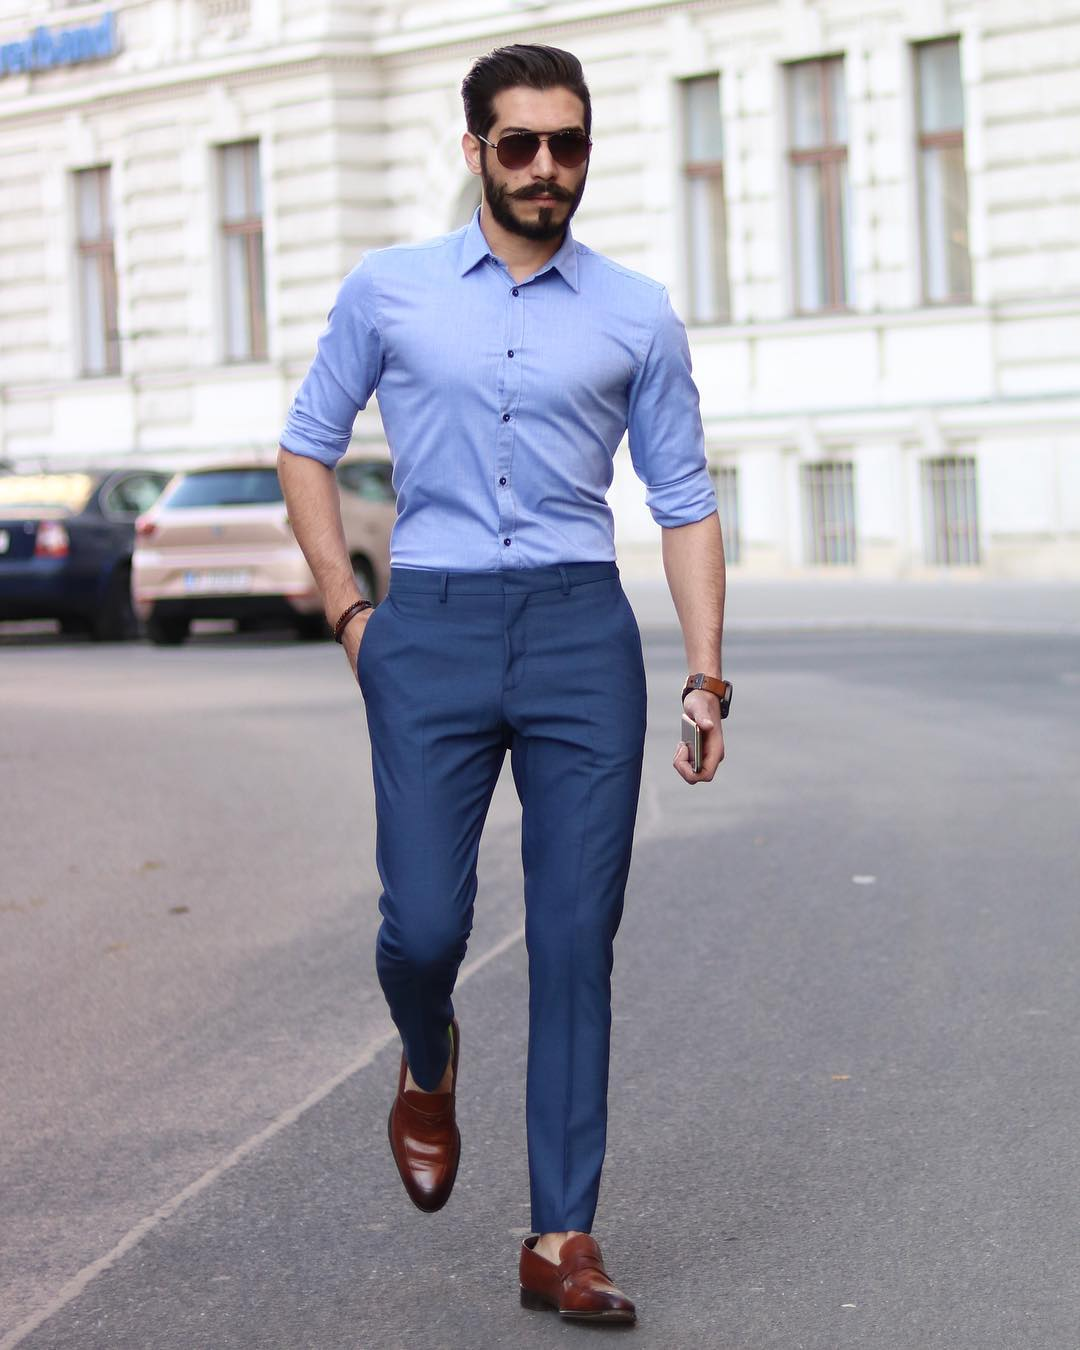 5 best outfit ideas for Indian men summer 2019 - LIFESTYLENUTS